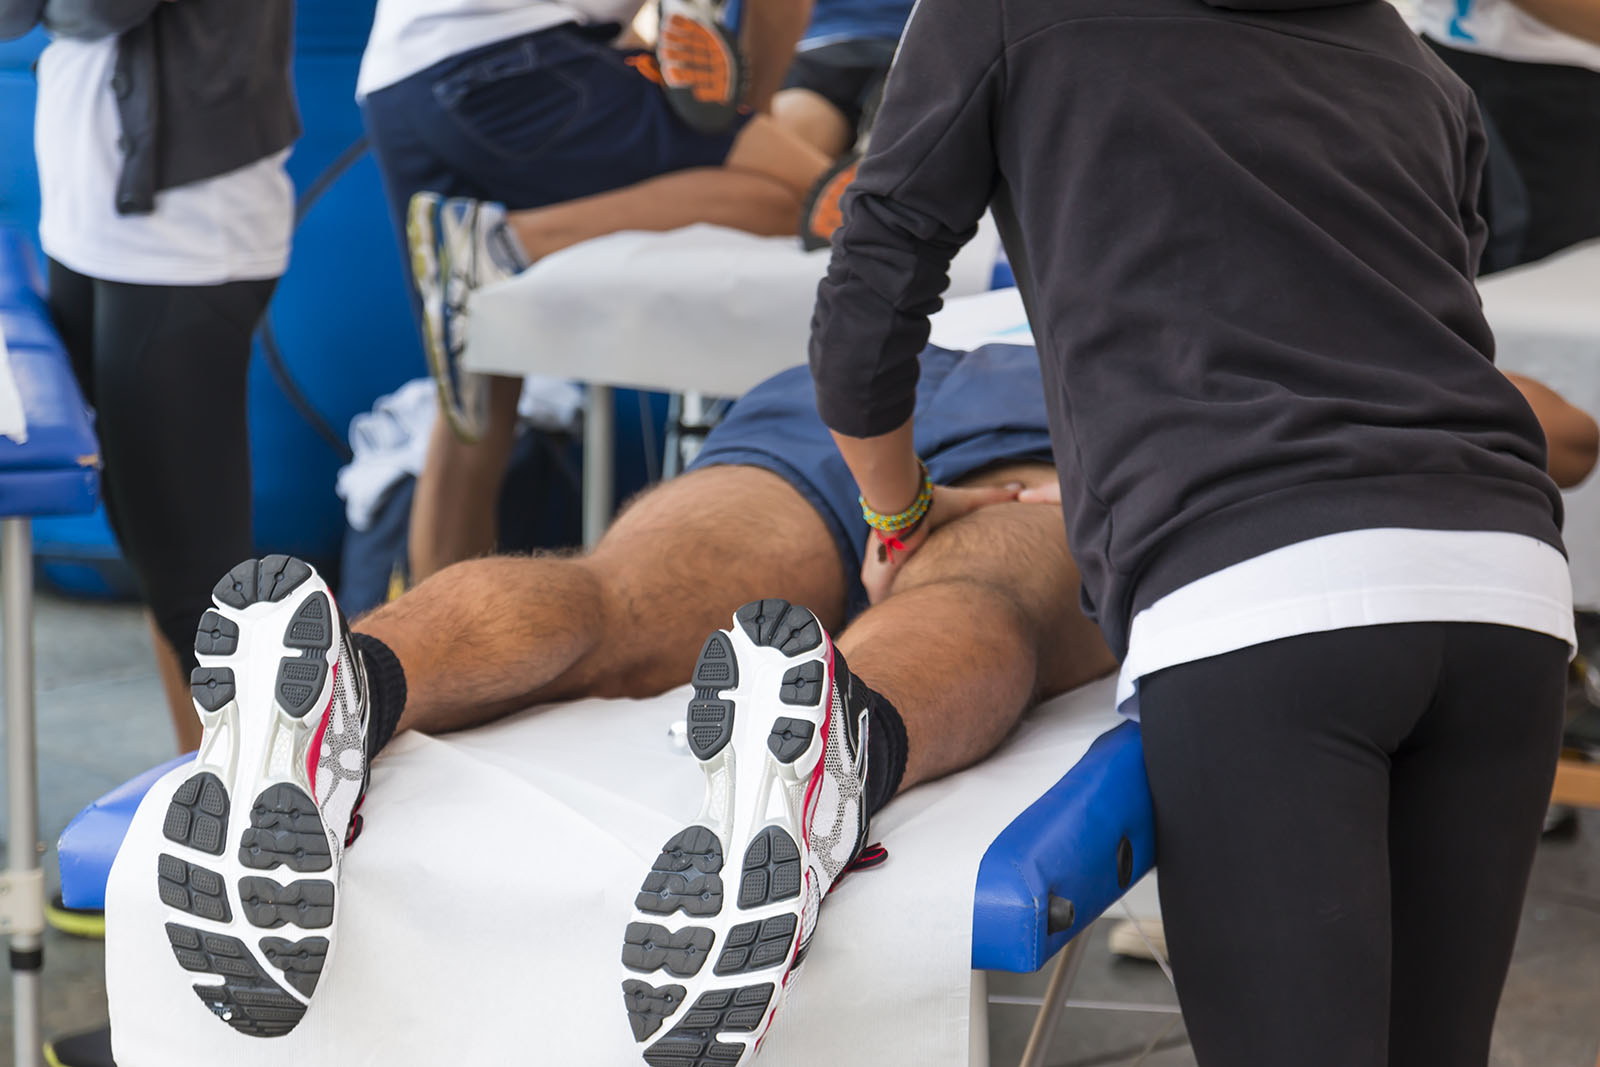 Athletic trainer working with an athlete in the training room